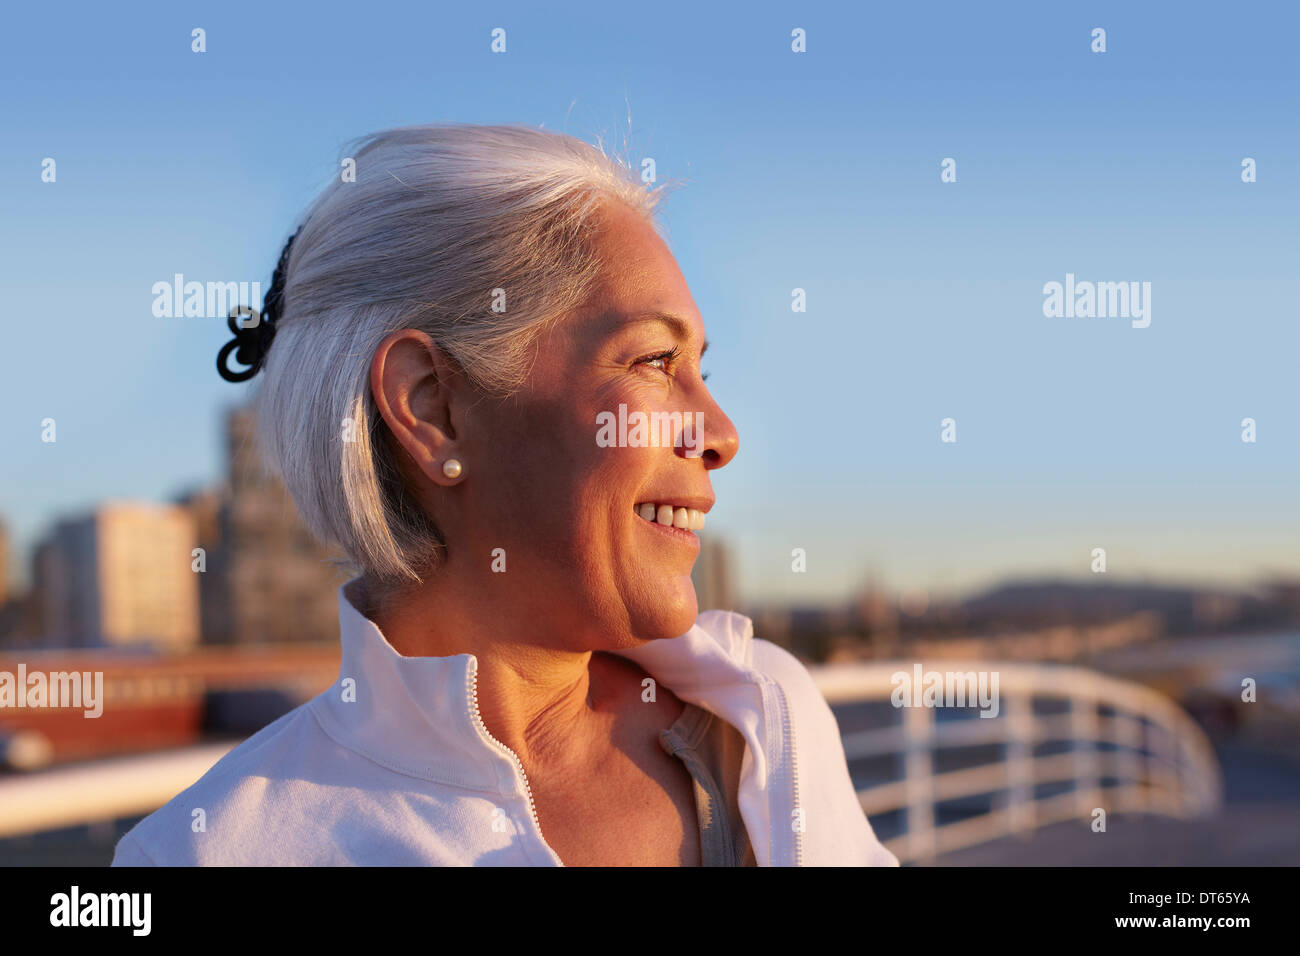 Close up of silver-haired young woman Photo Stock